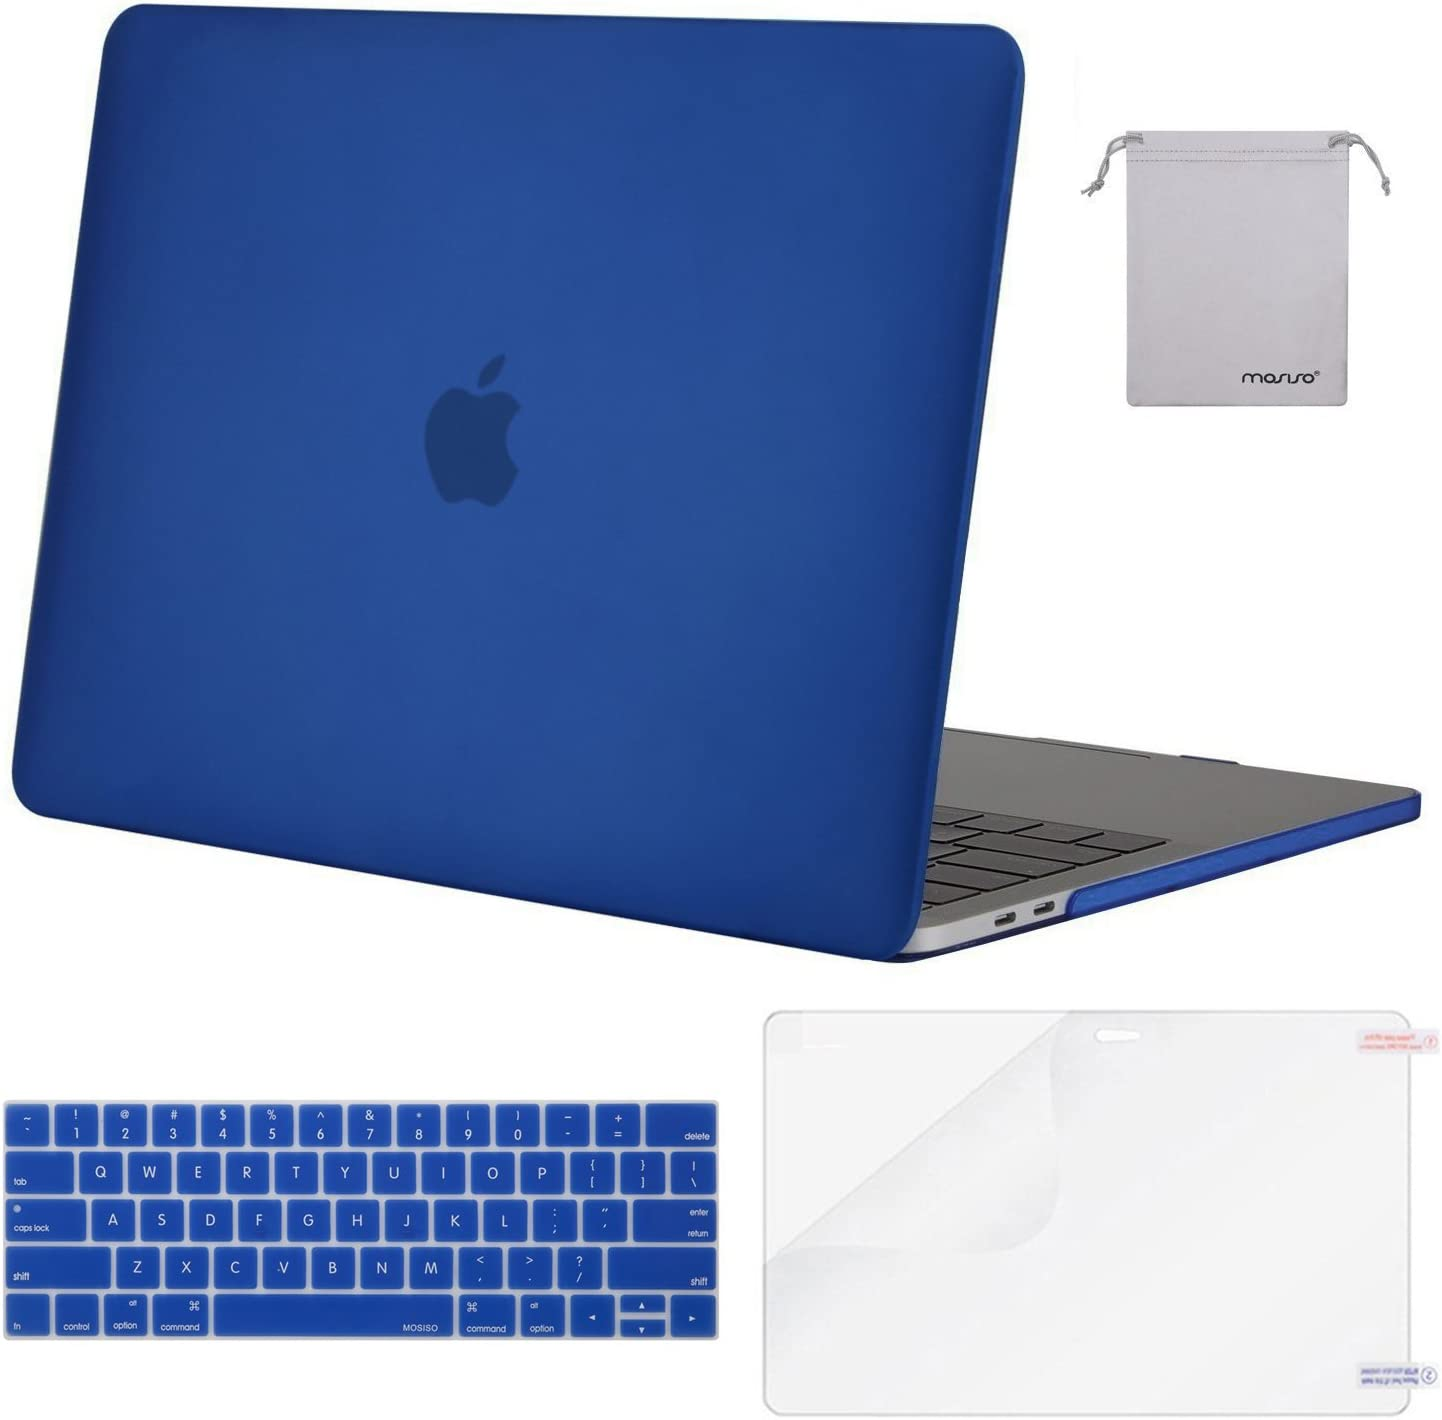 MOSISO MacBook Pro 13 inch Case 2019 2018 2017 2016 Release A2159 A1989 A1706 A1708, Plastic Hard Shell Case&Keyboard Cover&Screen Protector&Storage Bag Compatible with MacBook Pro 13, Royal Blue